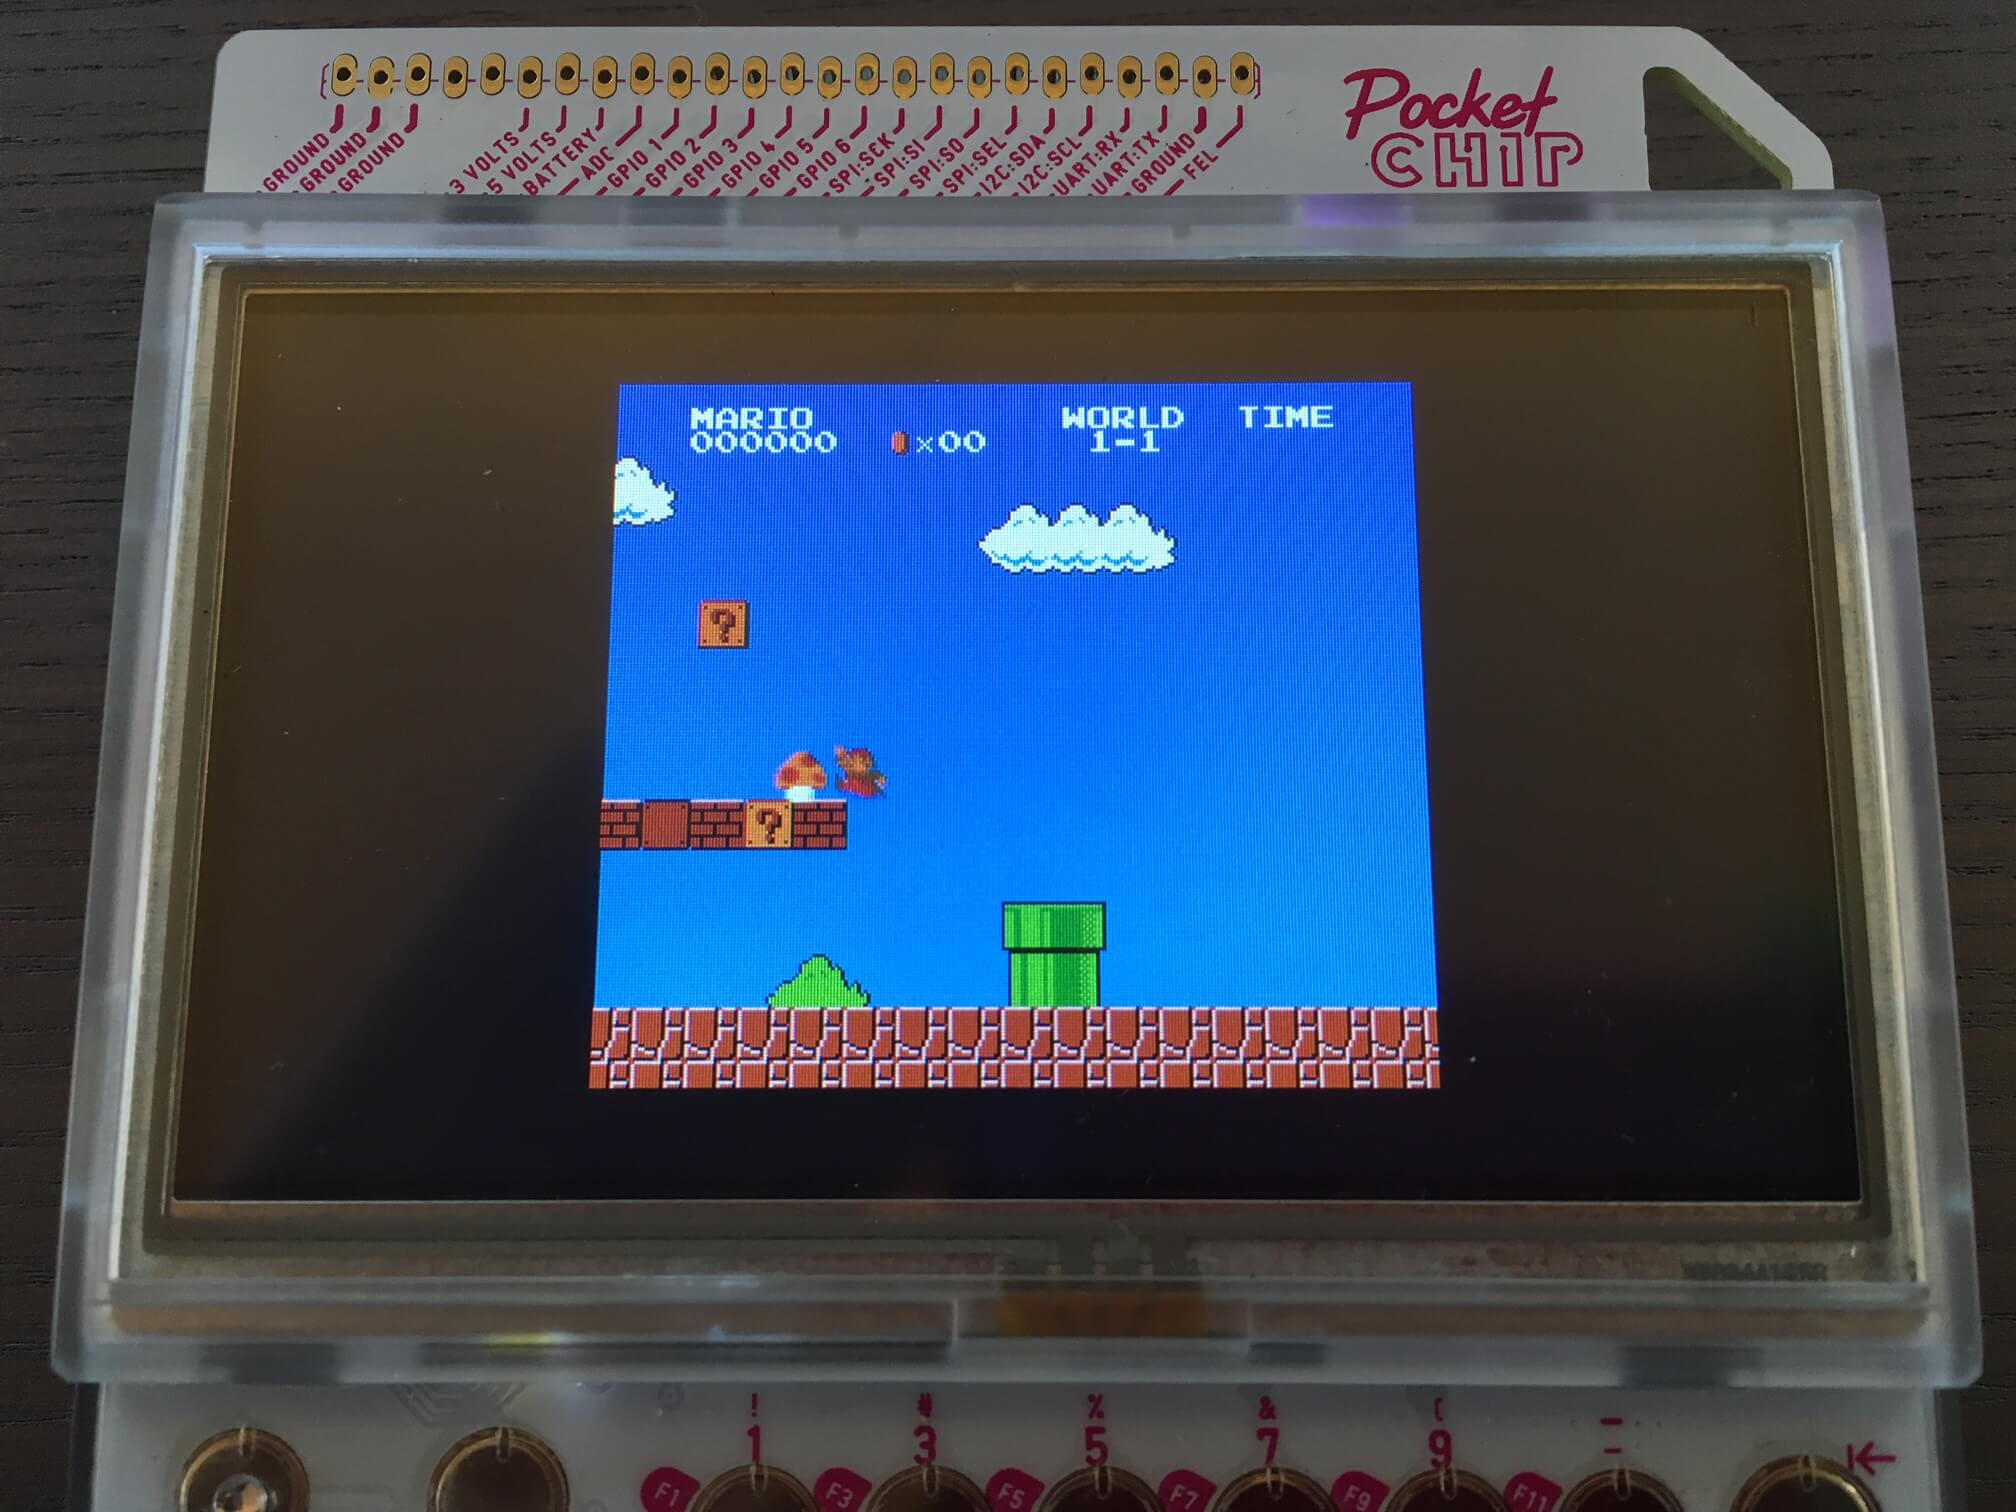 FCEUX NES Emulator running on PocketCHIP